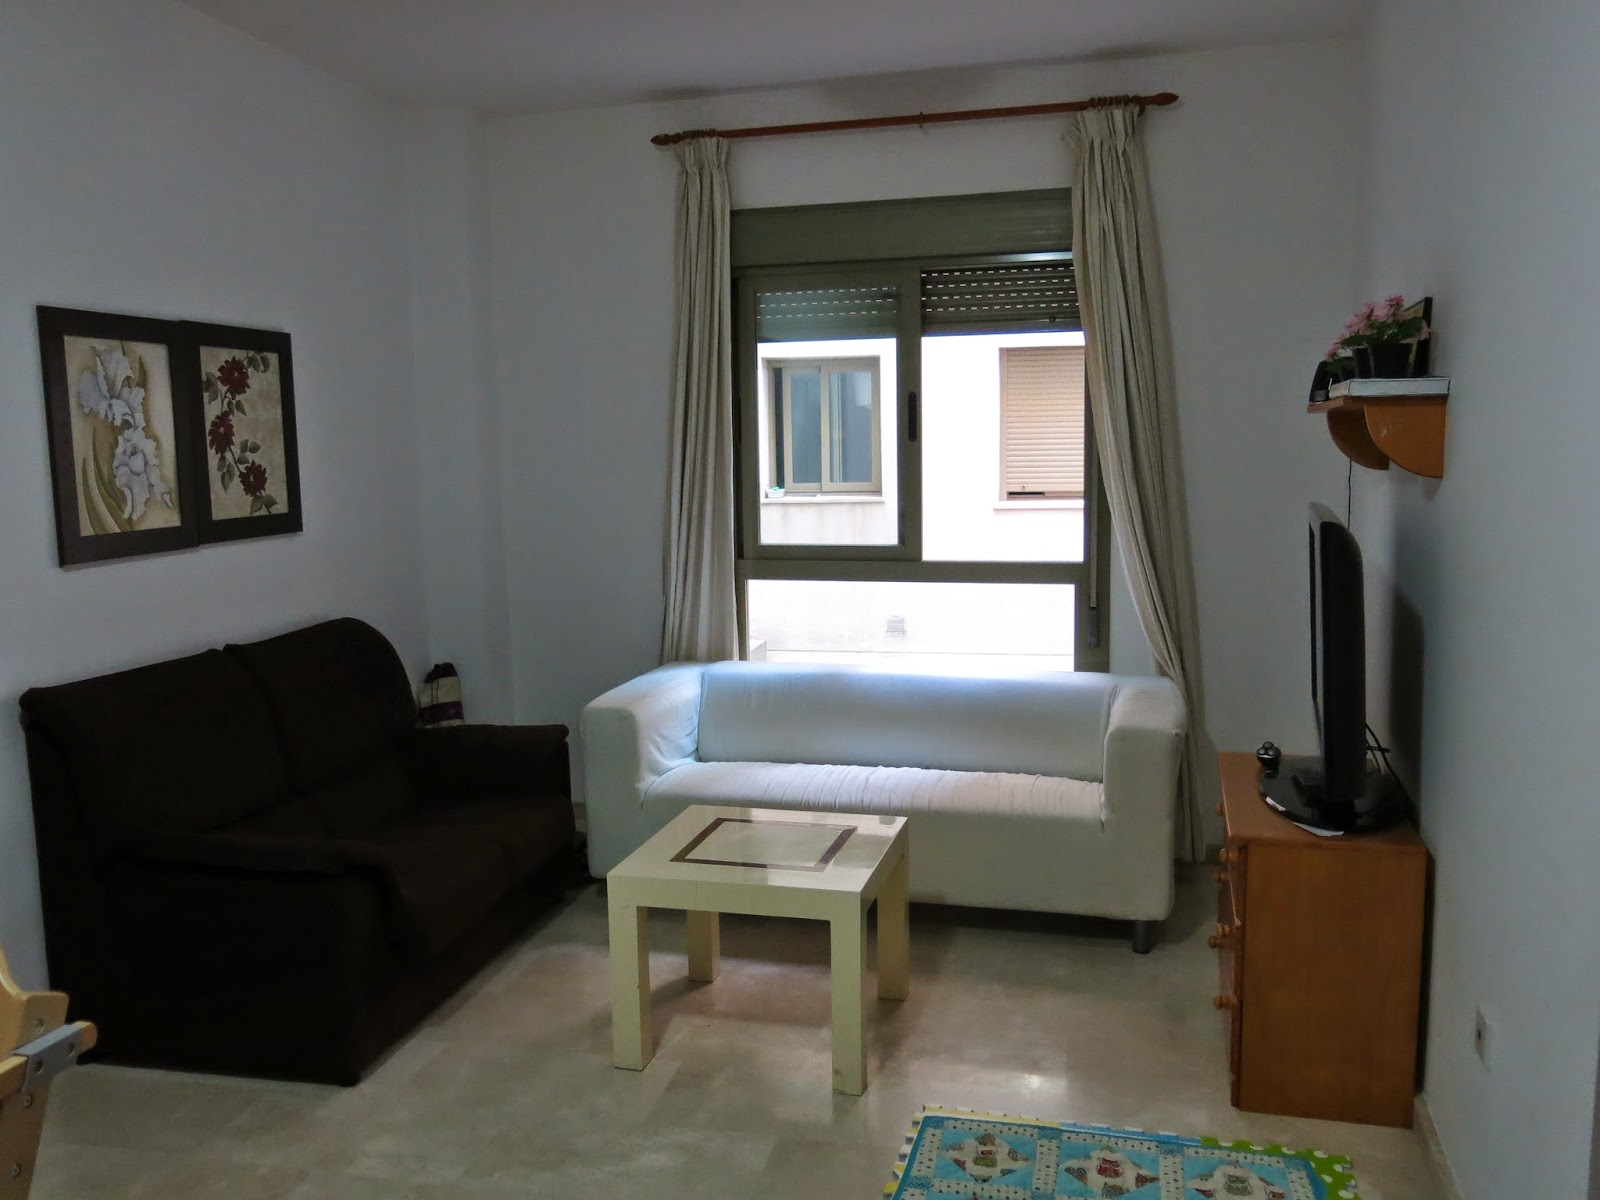 Photo of the lounge in our temporary apartment